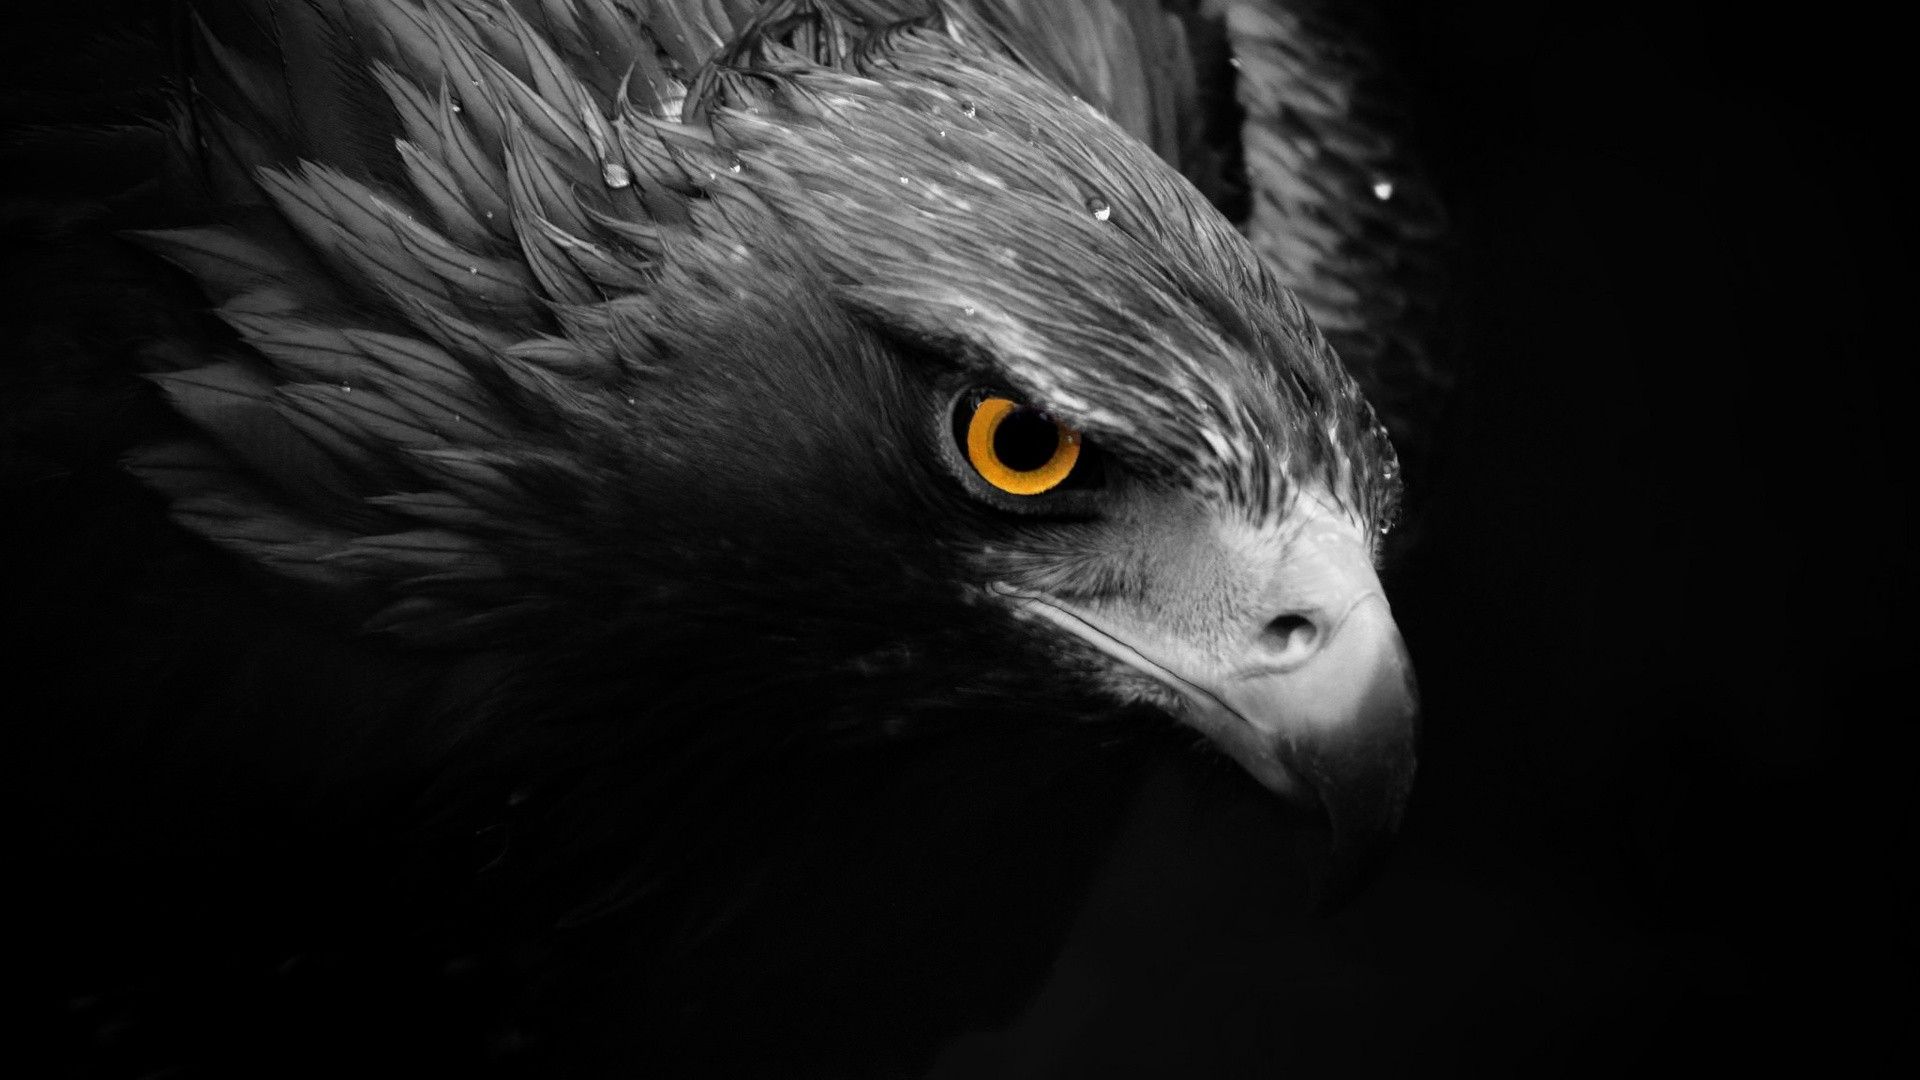 Awesome Wallpapers For Desktop 3d Hawks Birds Animals Selective Coloring Wallpapers Hd